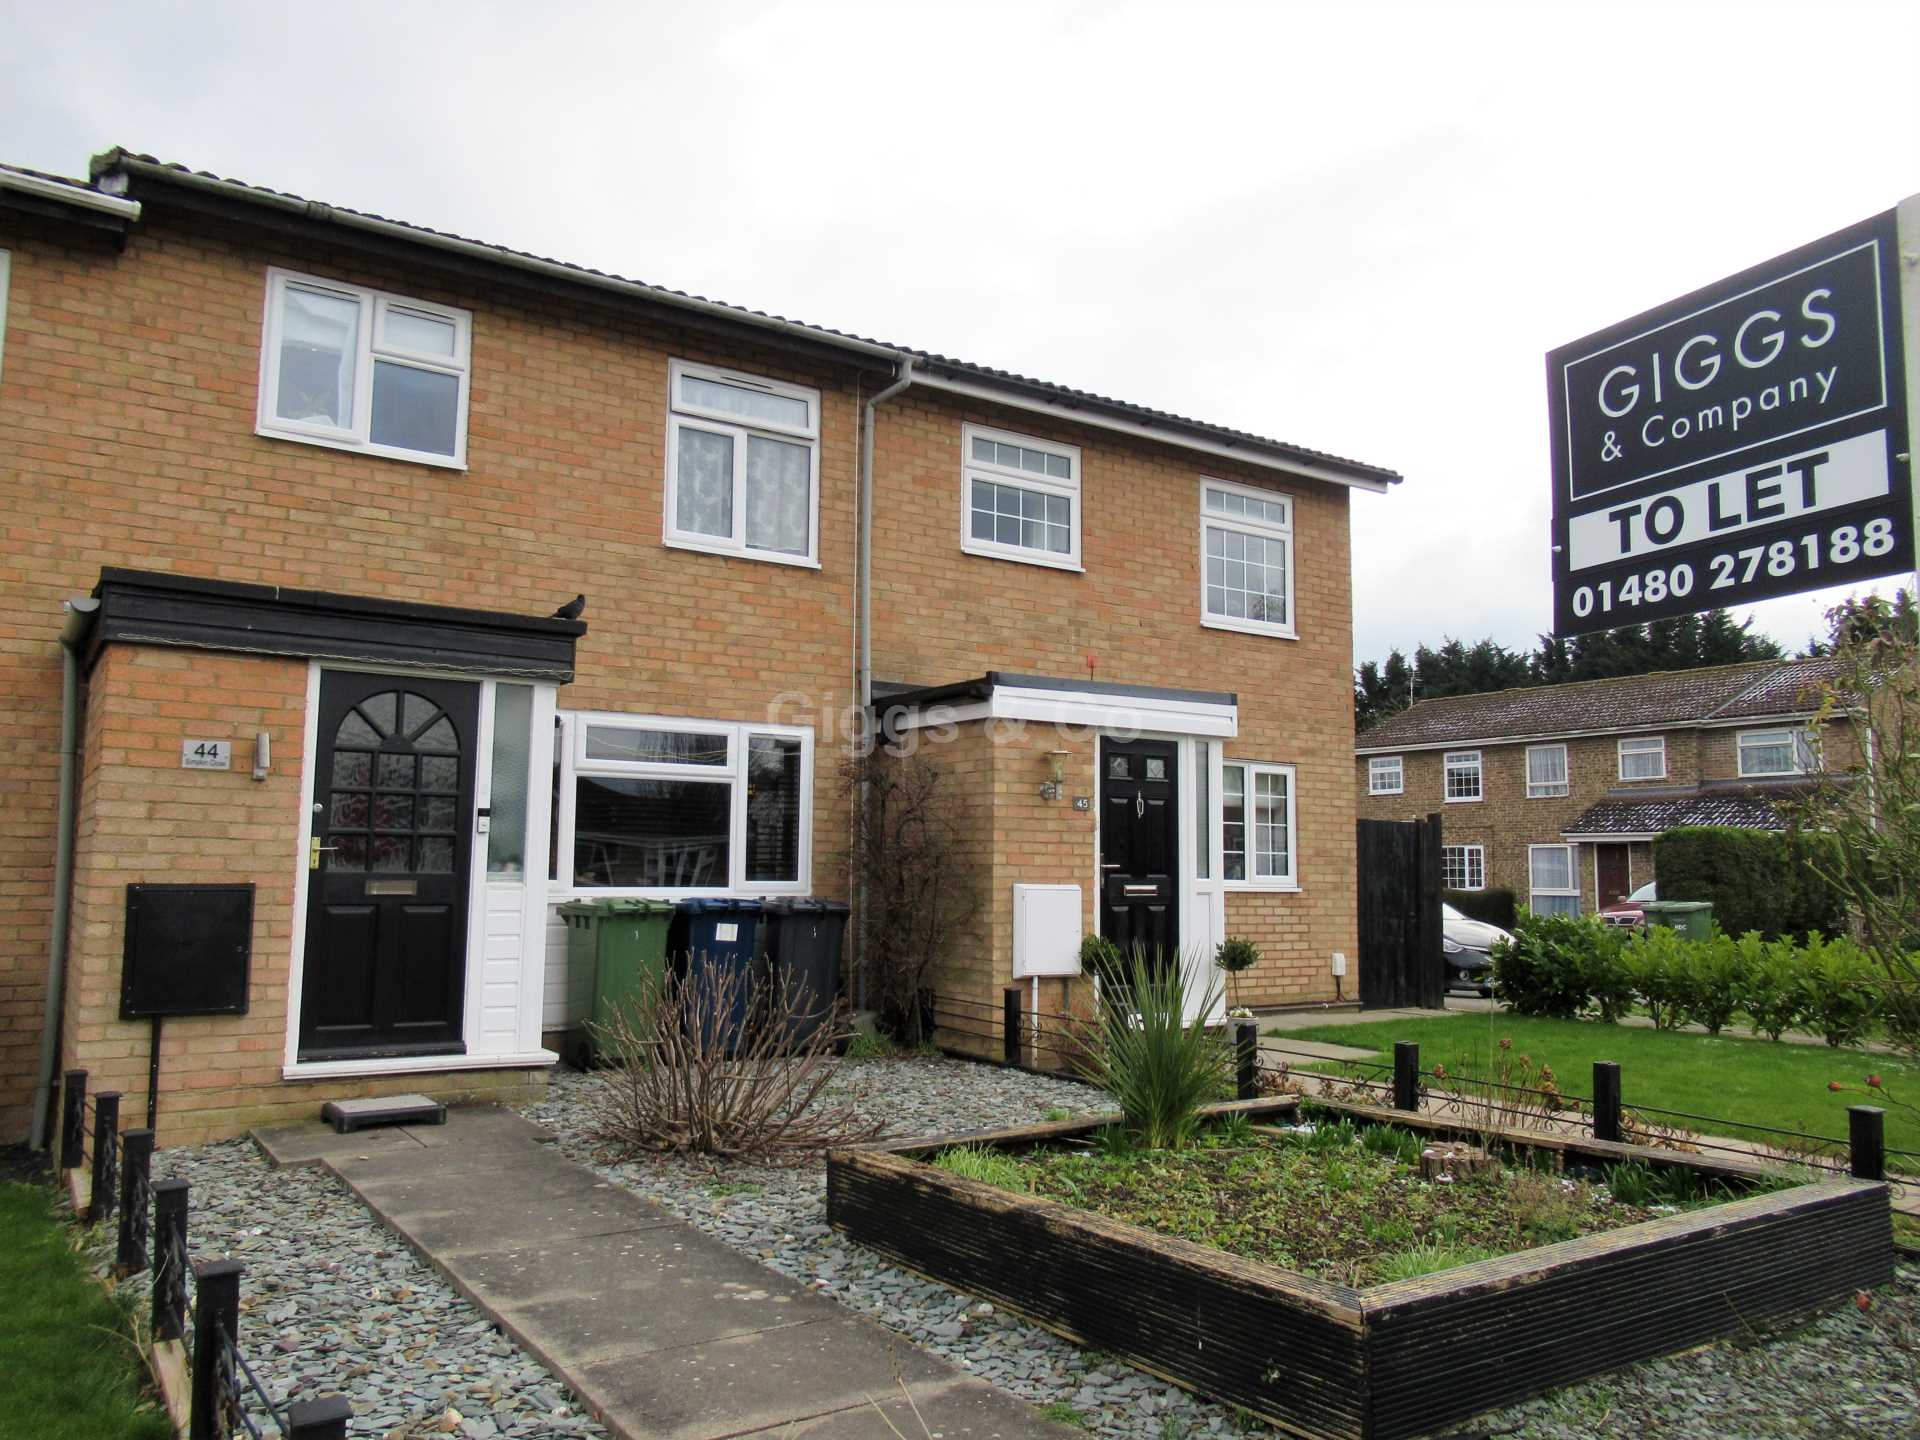 3 bed house to rent in Simpkin Close, Eaton Socon, PE19